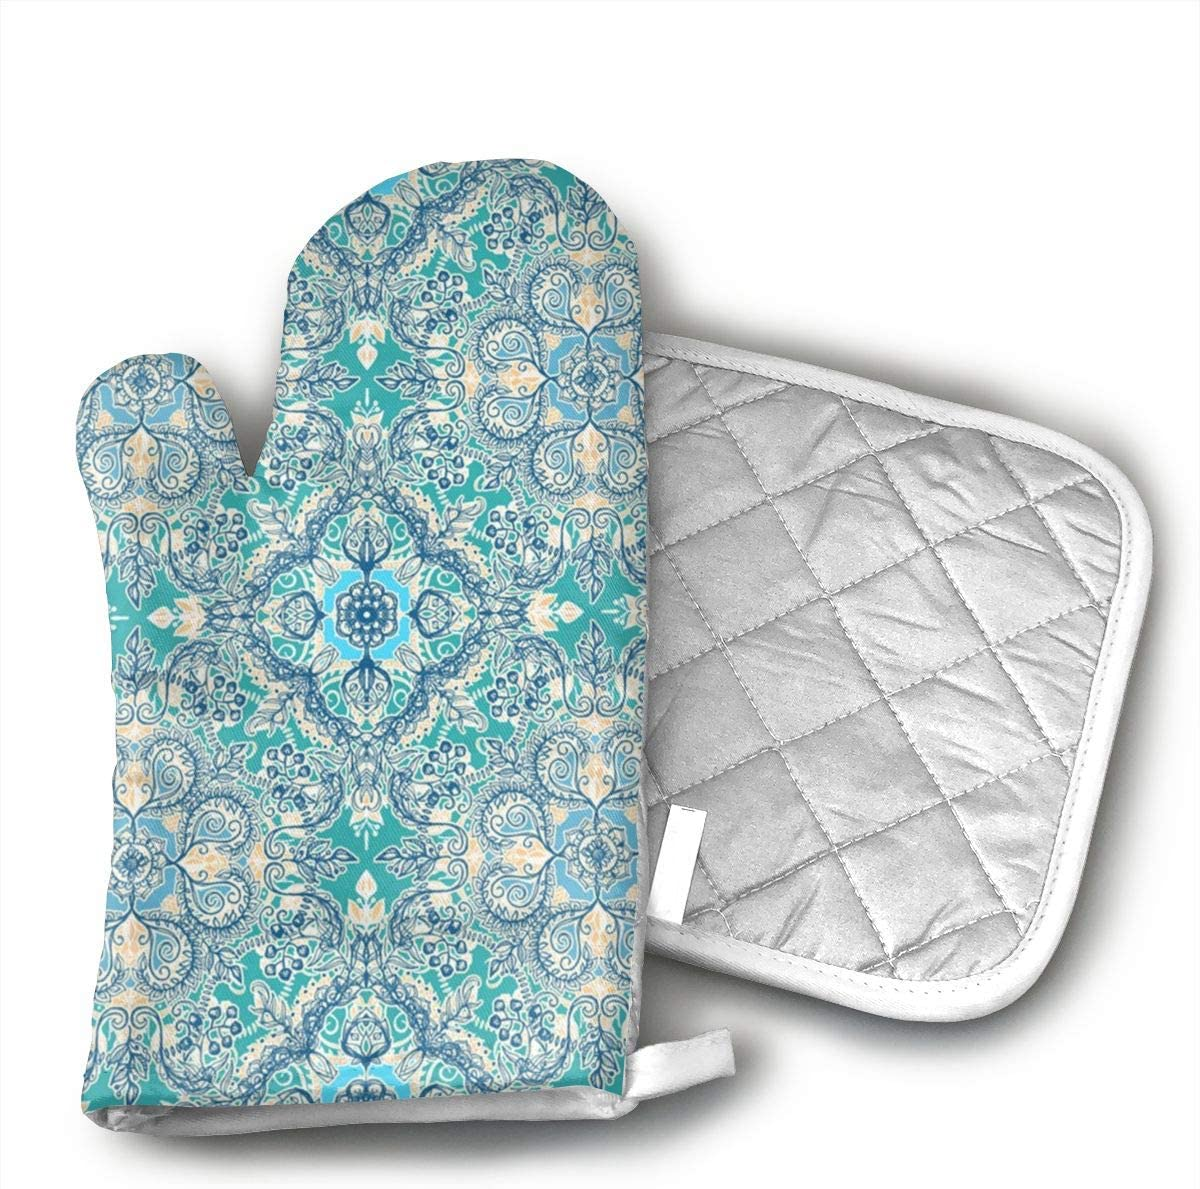 Floral in Teal Cream and Blue Oven Mitts and Pot Holders Baking Oven Gloves Hot Pads Set Heat Resistant for Finger Hand Wrist Protection